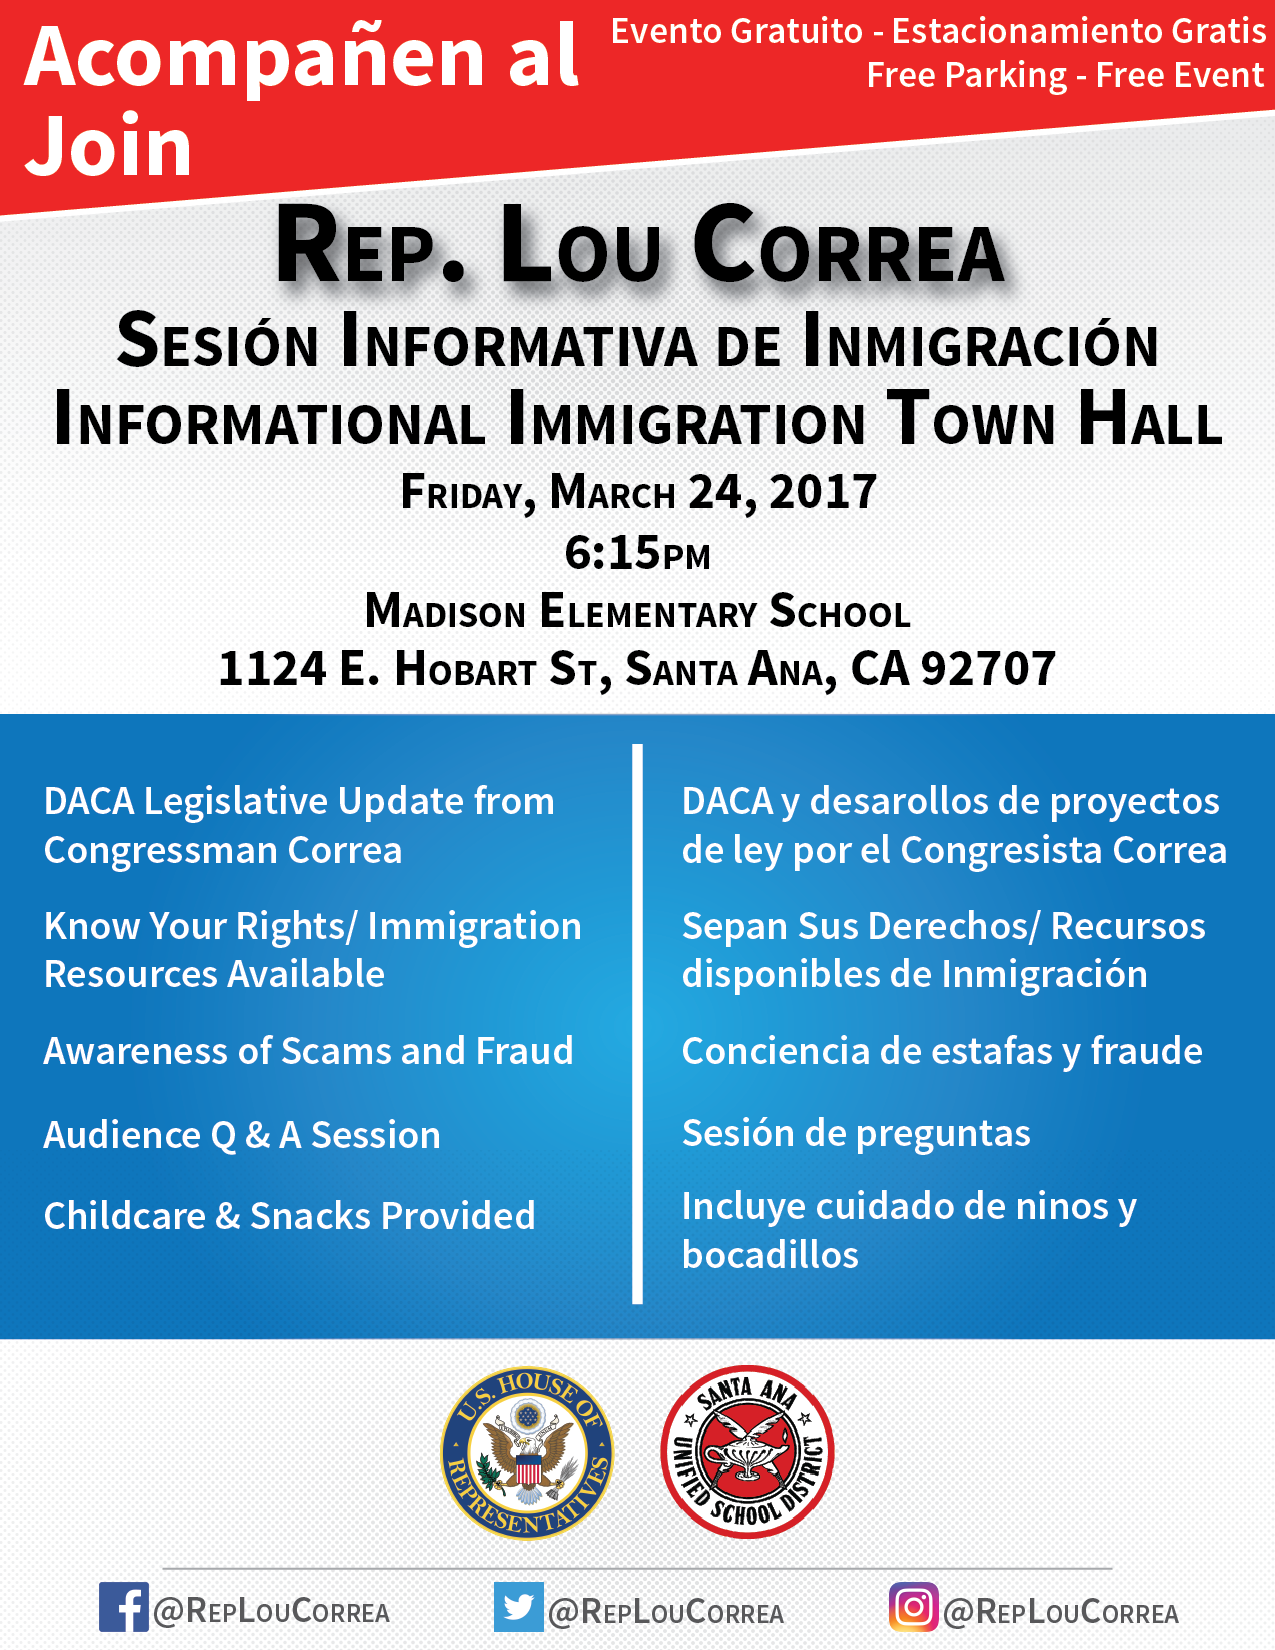 Immigration Forum at Madison Elementary School w/Lou Correa. March 24, 6:15 PM